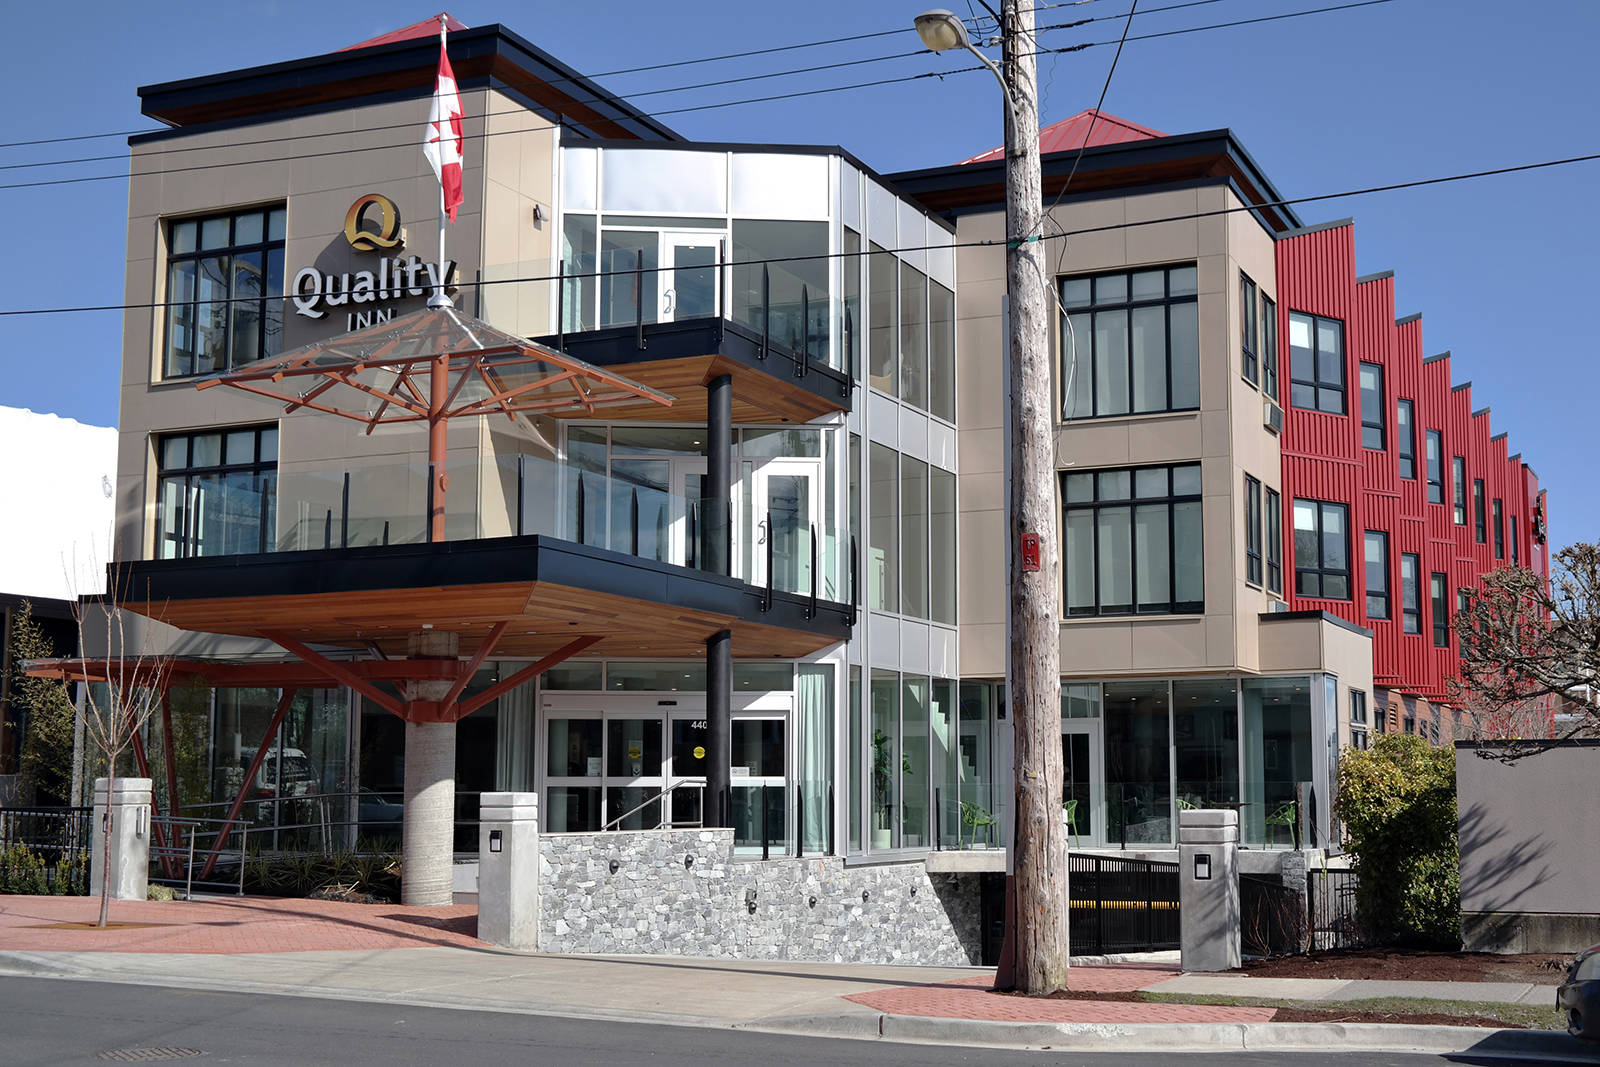 The Quality Inn, a 45-room boutique hotel, has opened on Selby Street in Nanaimo's Old City Quarter. (Chris Bush/News Bulletin)